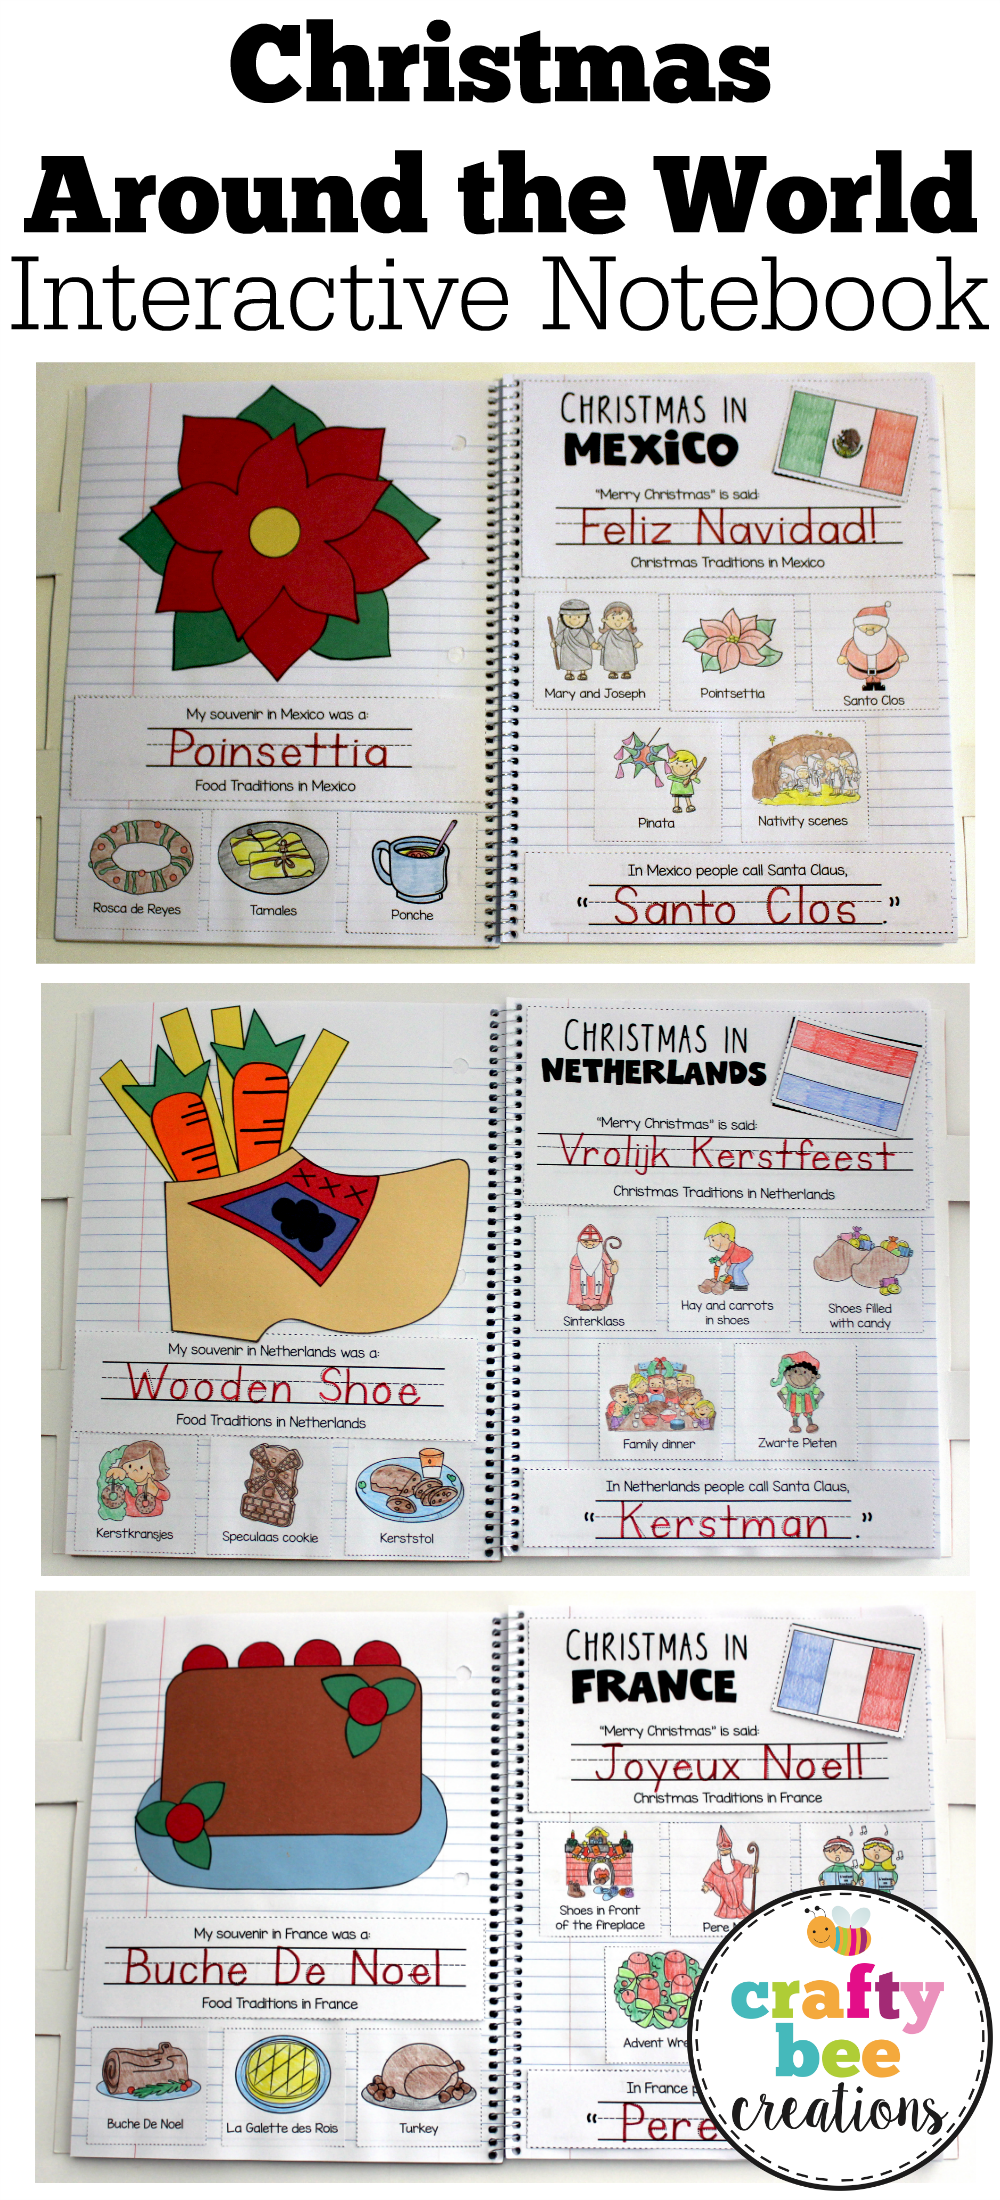 Christmas Around The World Interactive Notebook That Includes Crafts And